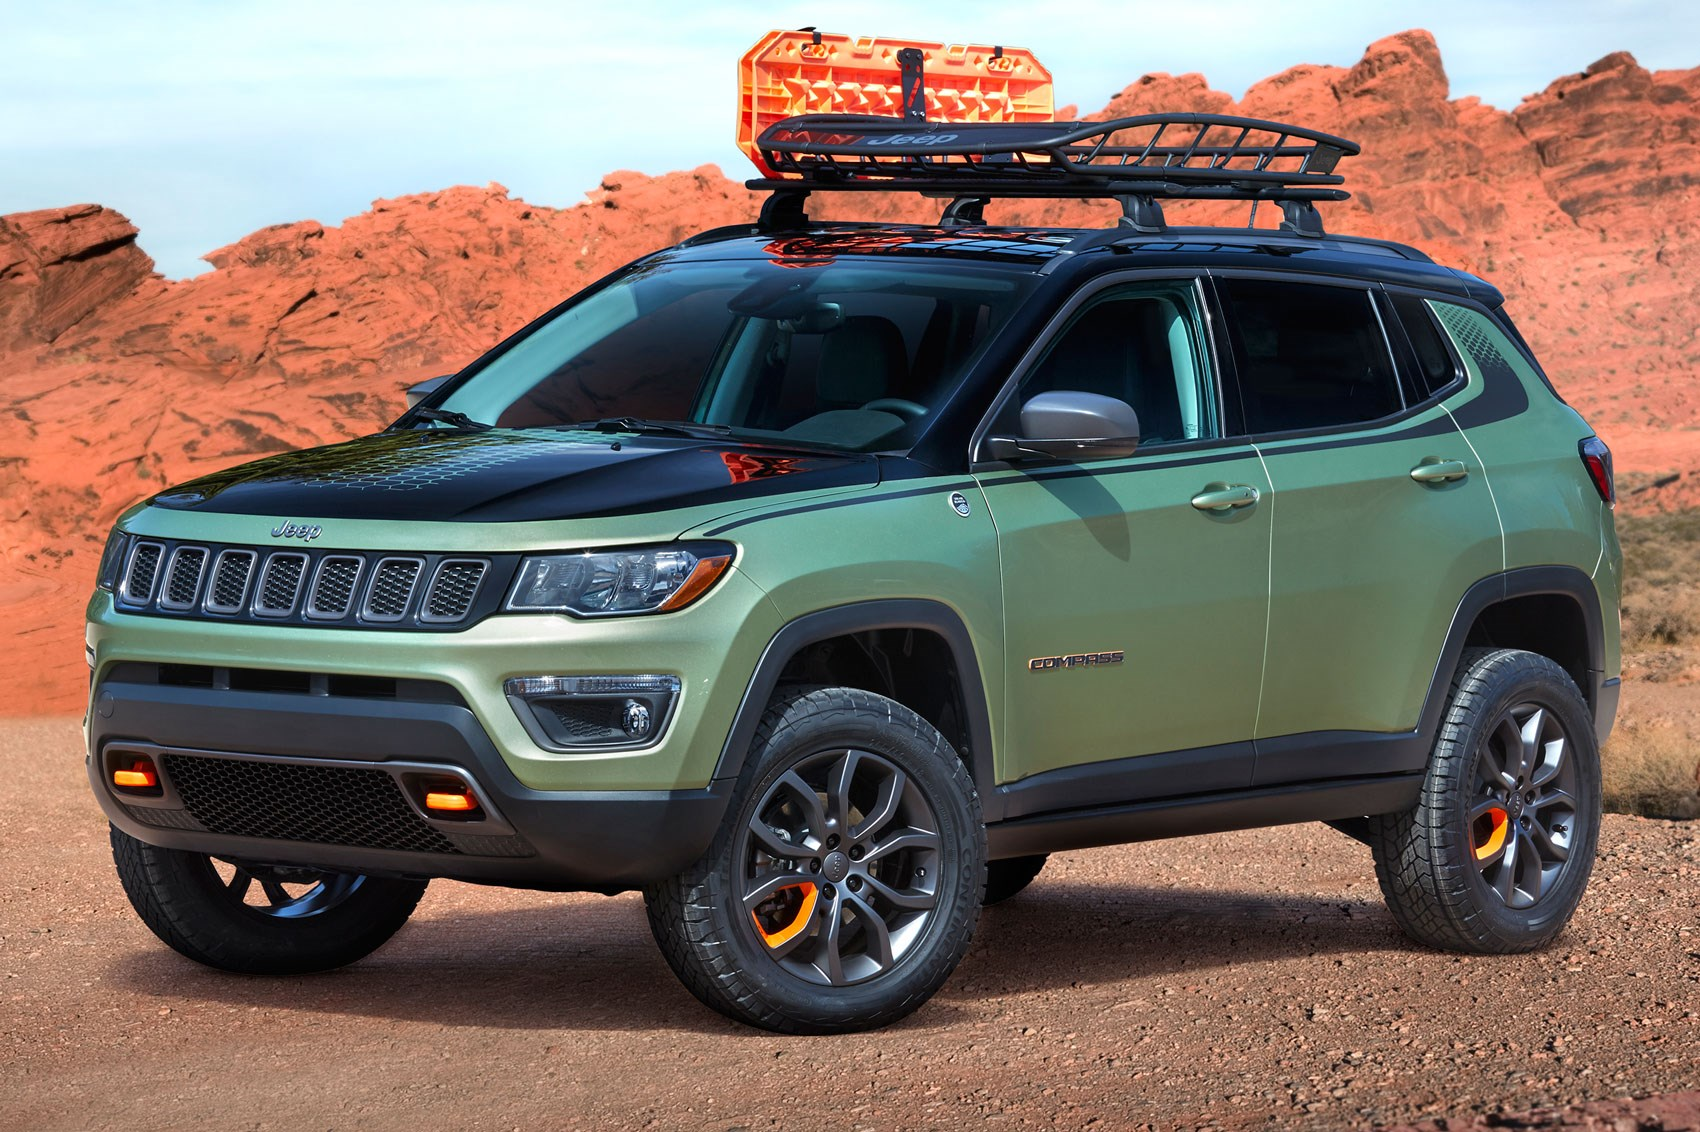 Radical Mopar Jeep Concepts To Storm 2017 Easter Safari